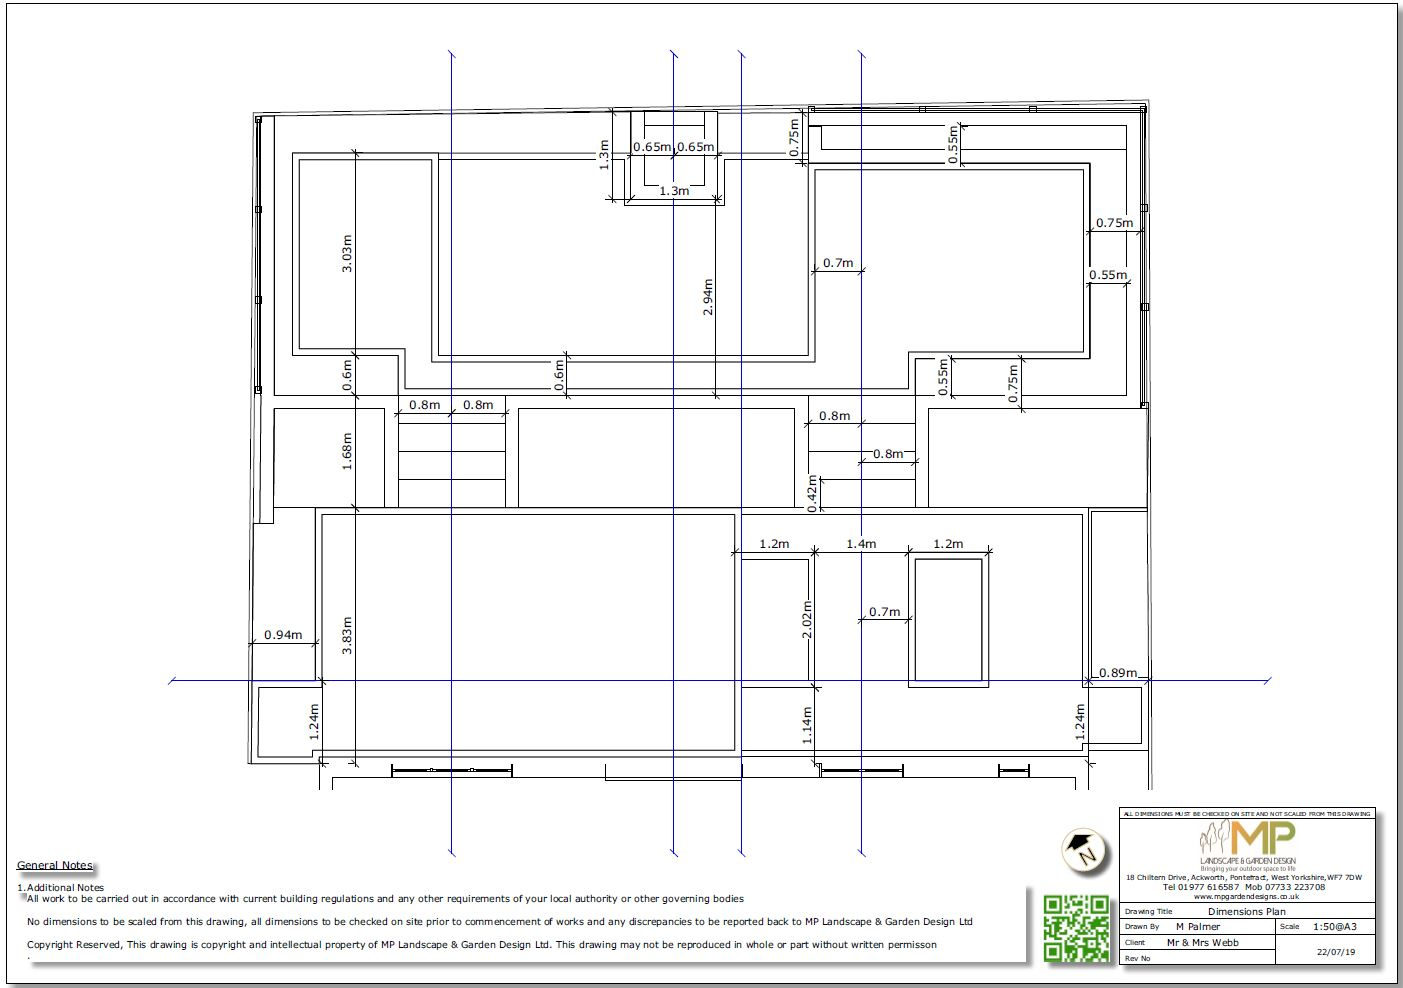 4, Dimensions plan for a new build property in Pontefract.